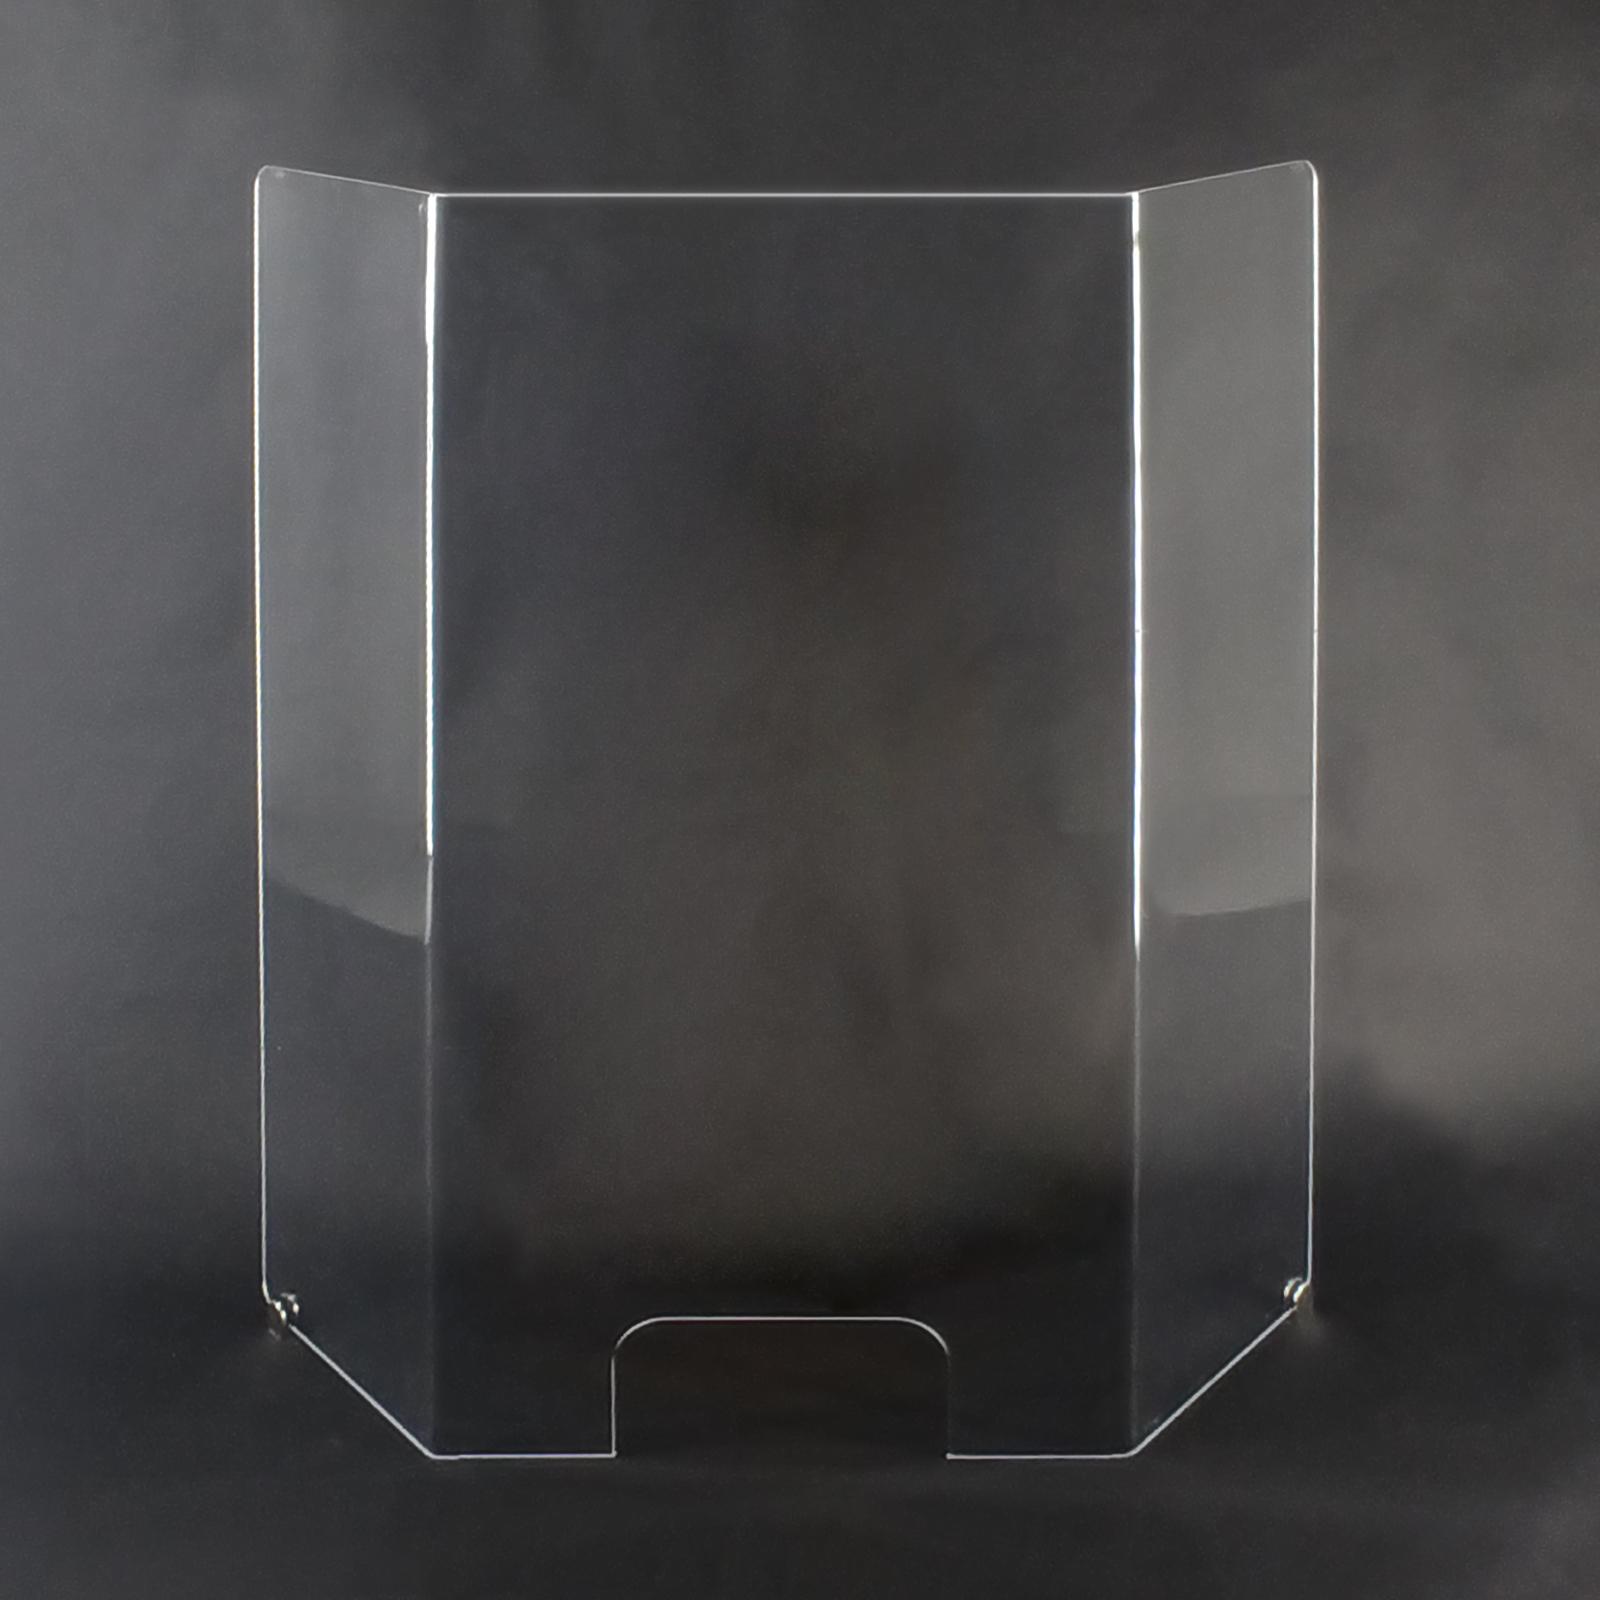 """Coronavirus cashier sneeze guard with window optical acrylic 42"""" x 48"""" x 8"""" tri-fold w/SS mounts. Ideal for dentist office, doctors office, and grocery stores.  May also be used to protect bank tellers and cashiers from air-born illness.  Made of 1/4"""" optical acrylic, 4 times stronger and infinitely clearer than normal plexiglass.  This is a good looking unit that will enhance your business.  Includes stainless steel mounting hardware.  Protect yourself and your employees from covid-19 viruses with these commercial covidvirus barriers.  Covid-19 sneeze guards are made by Buffet Enhancements International, veteran owned and American made to protect you and your employees from disease.  Make coronavirus testing a thing of the past."""